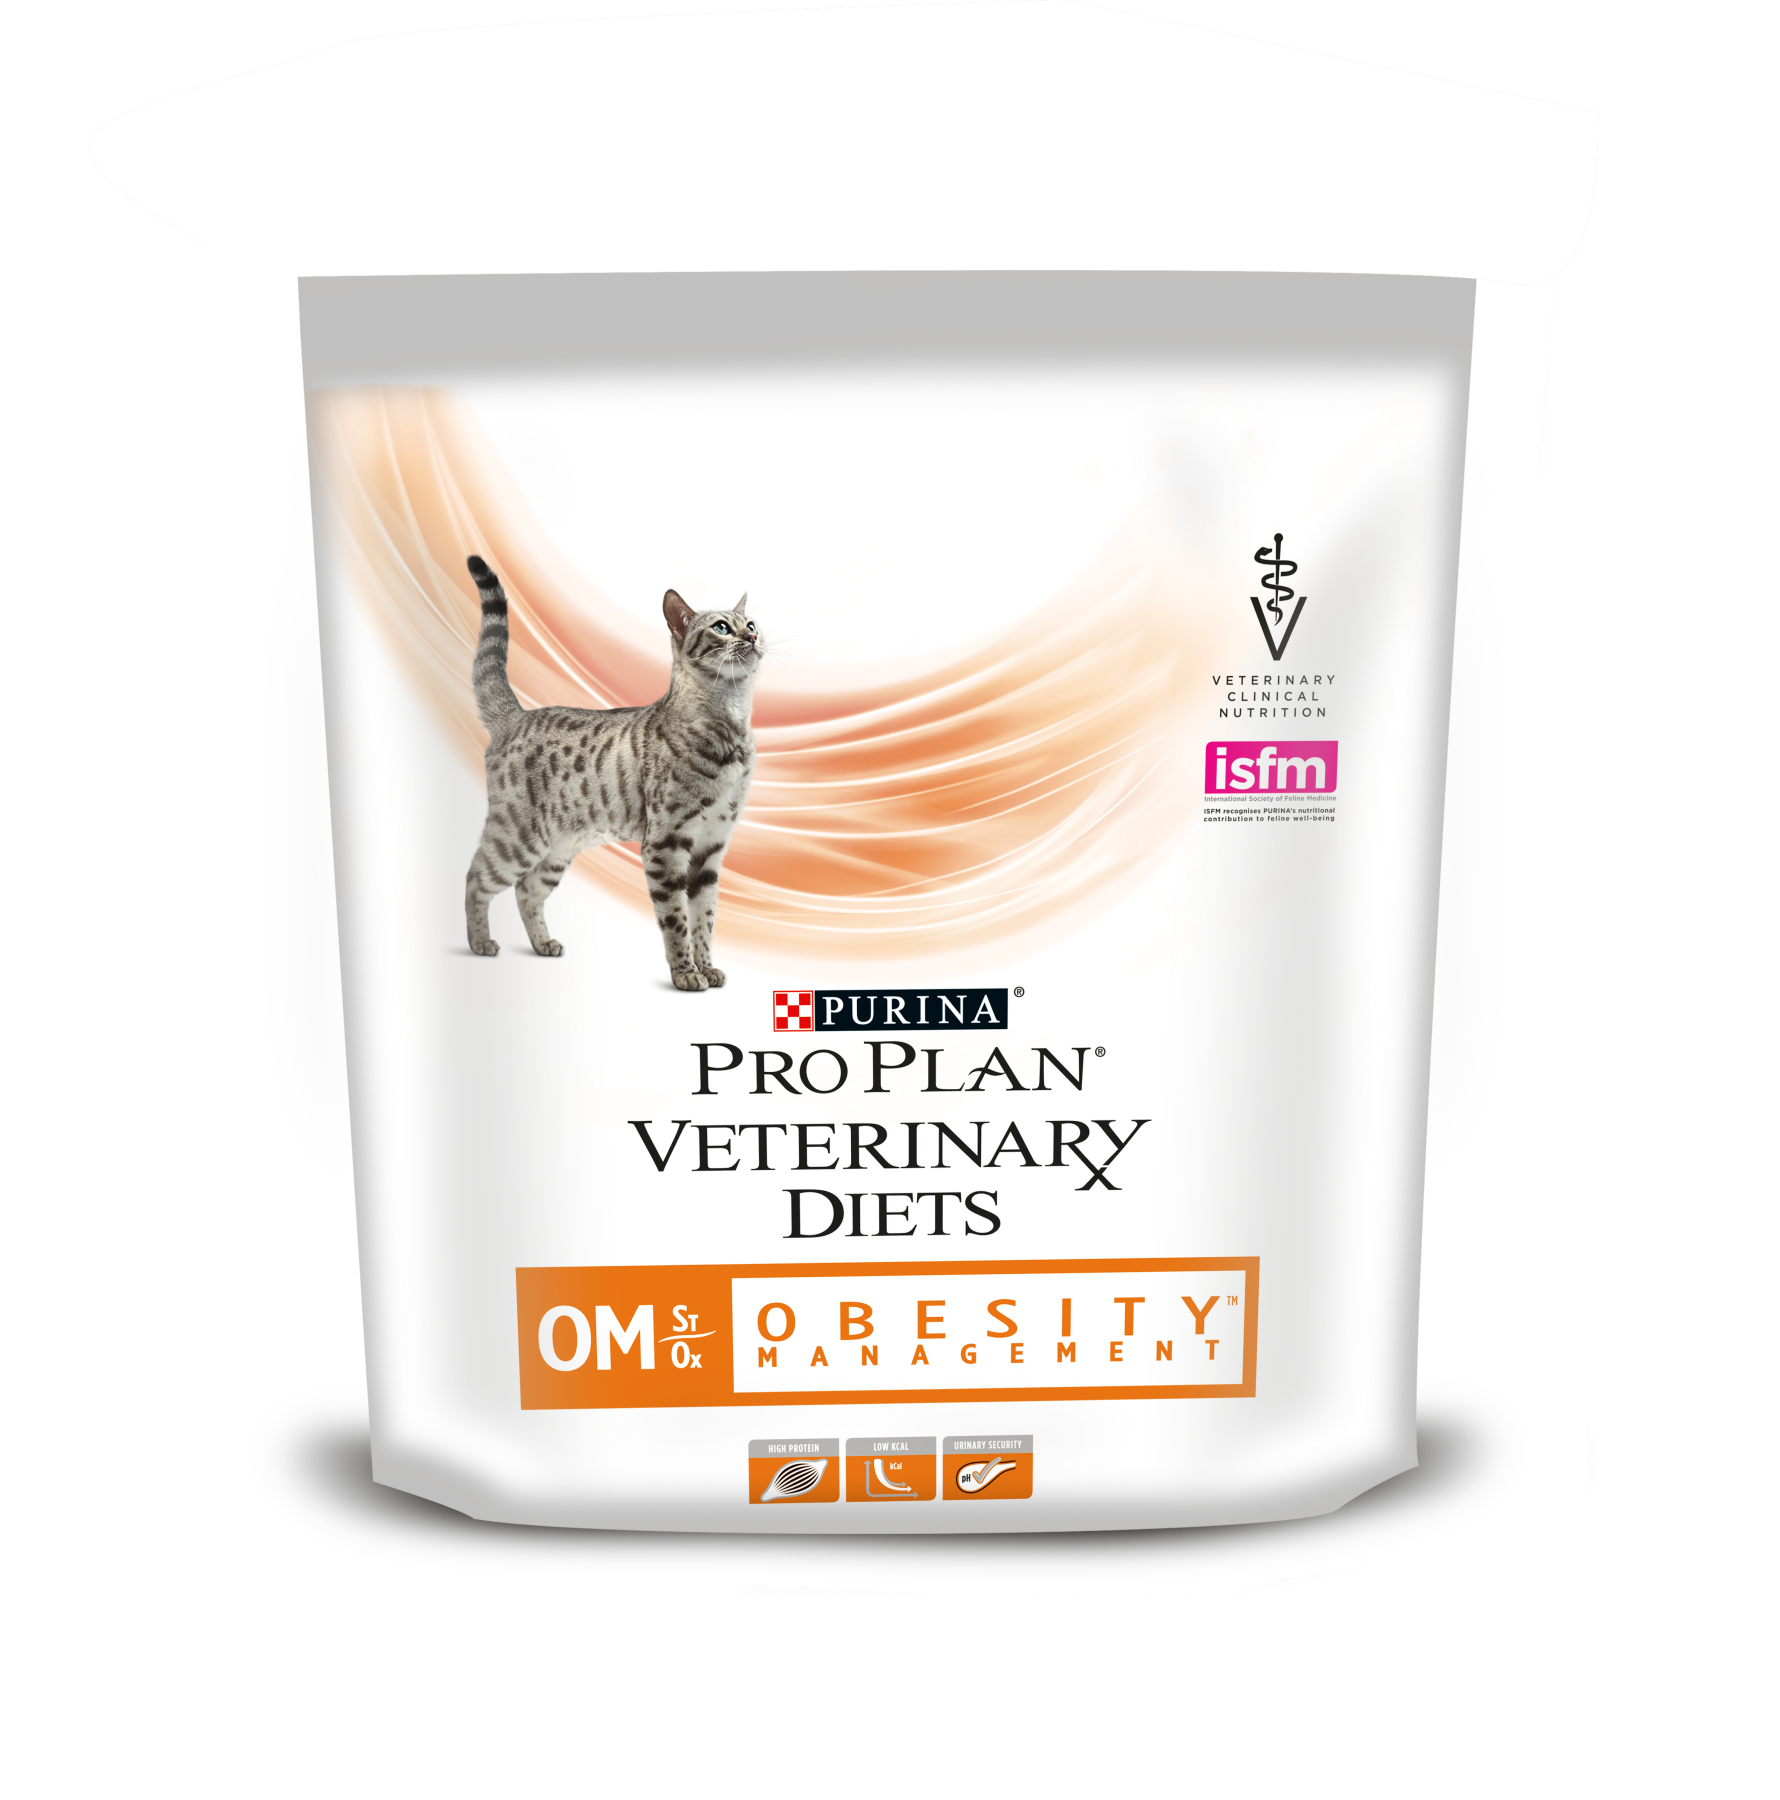 Pro Plan Veterinary Diets OM Obesity Management cat food at obesity, 350 gr image